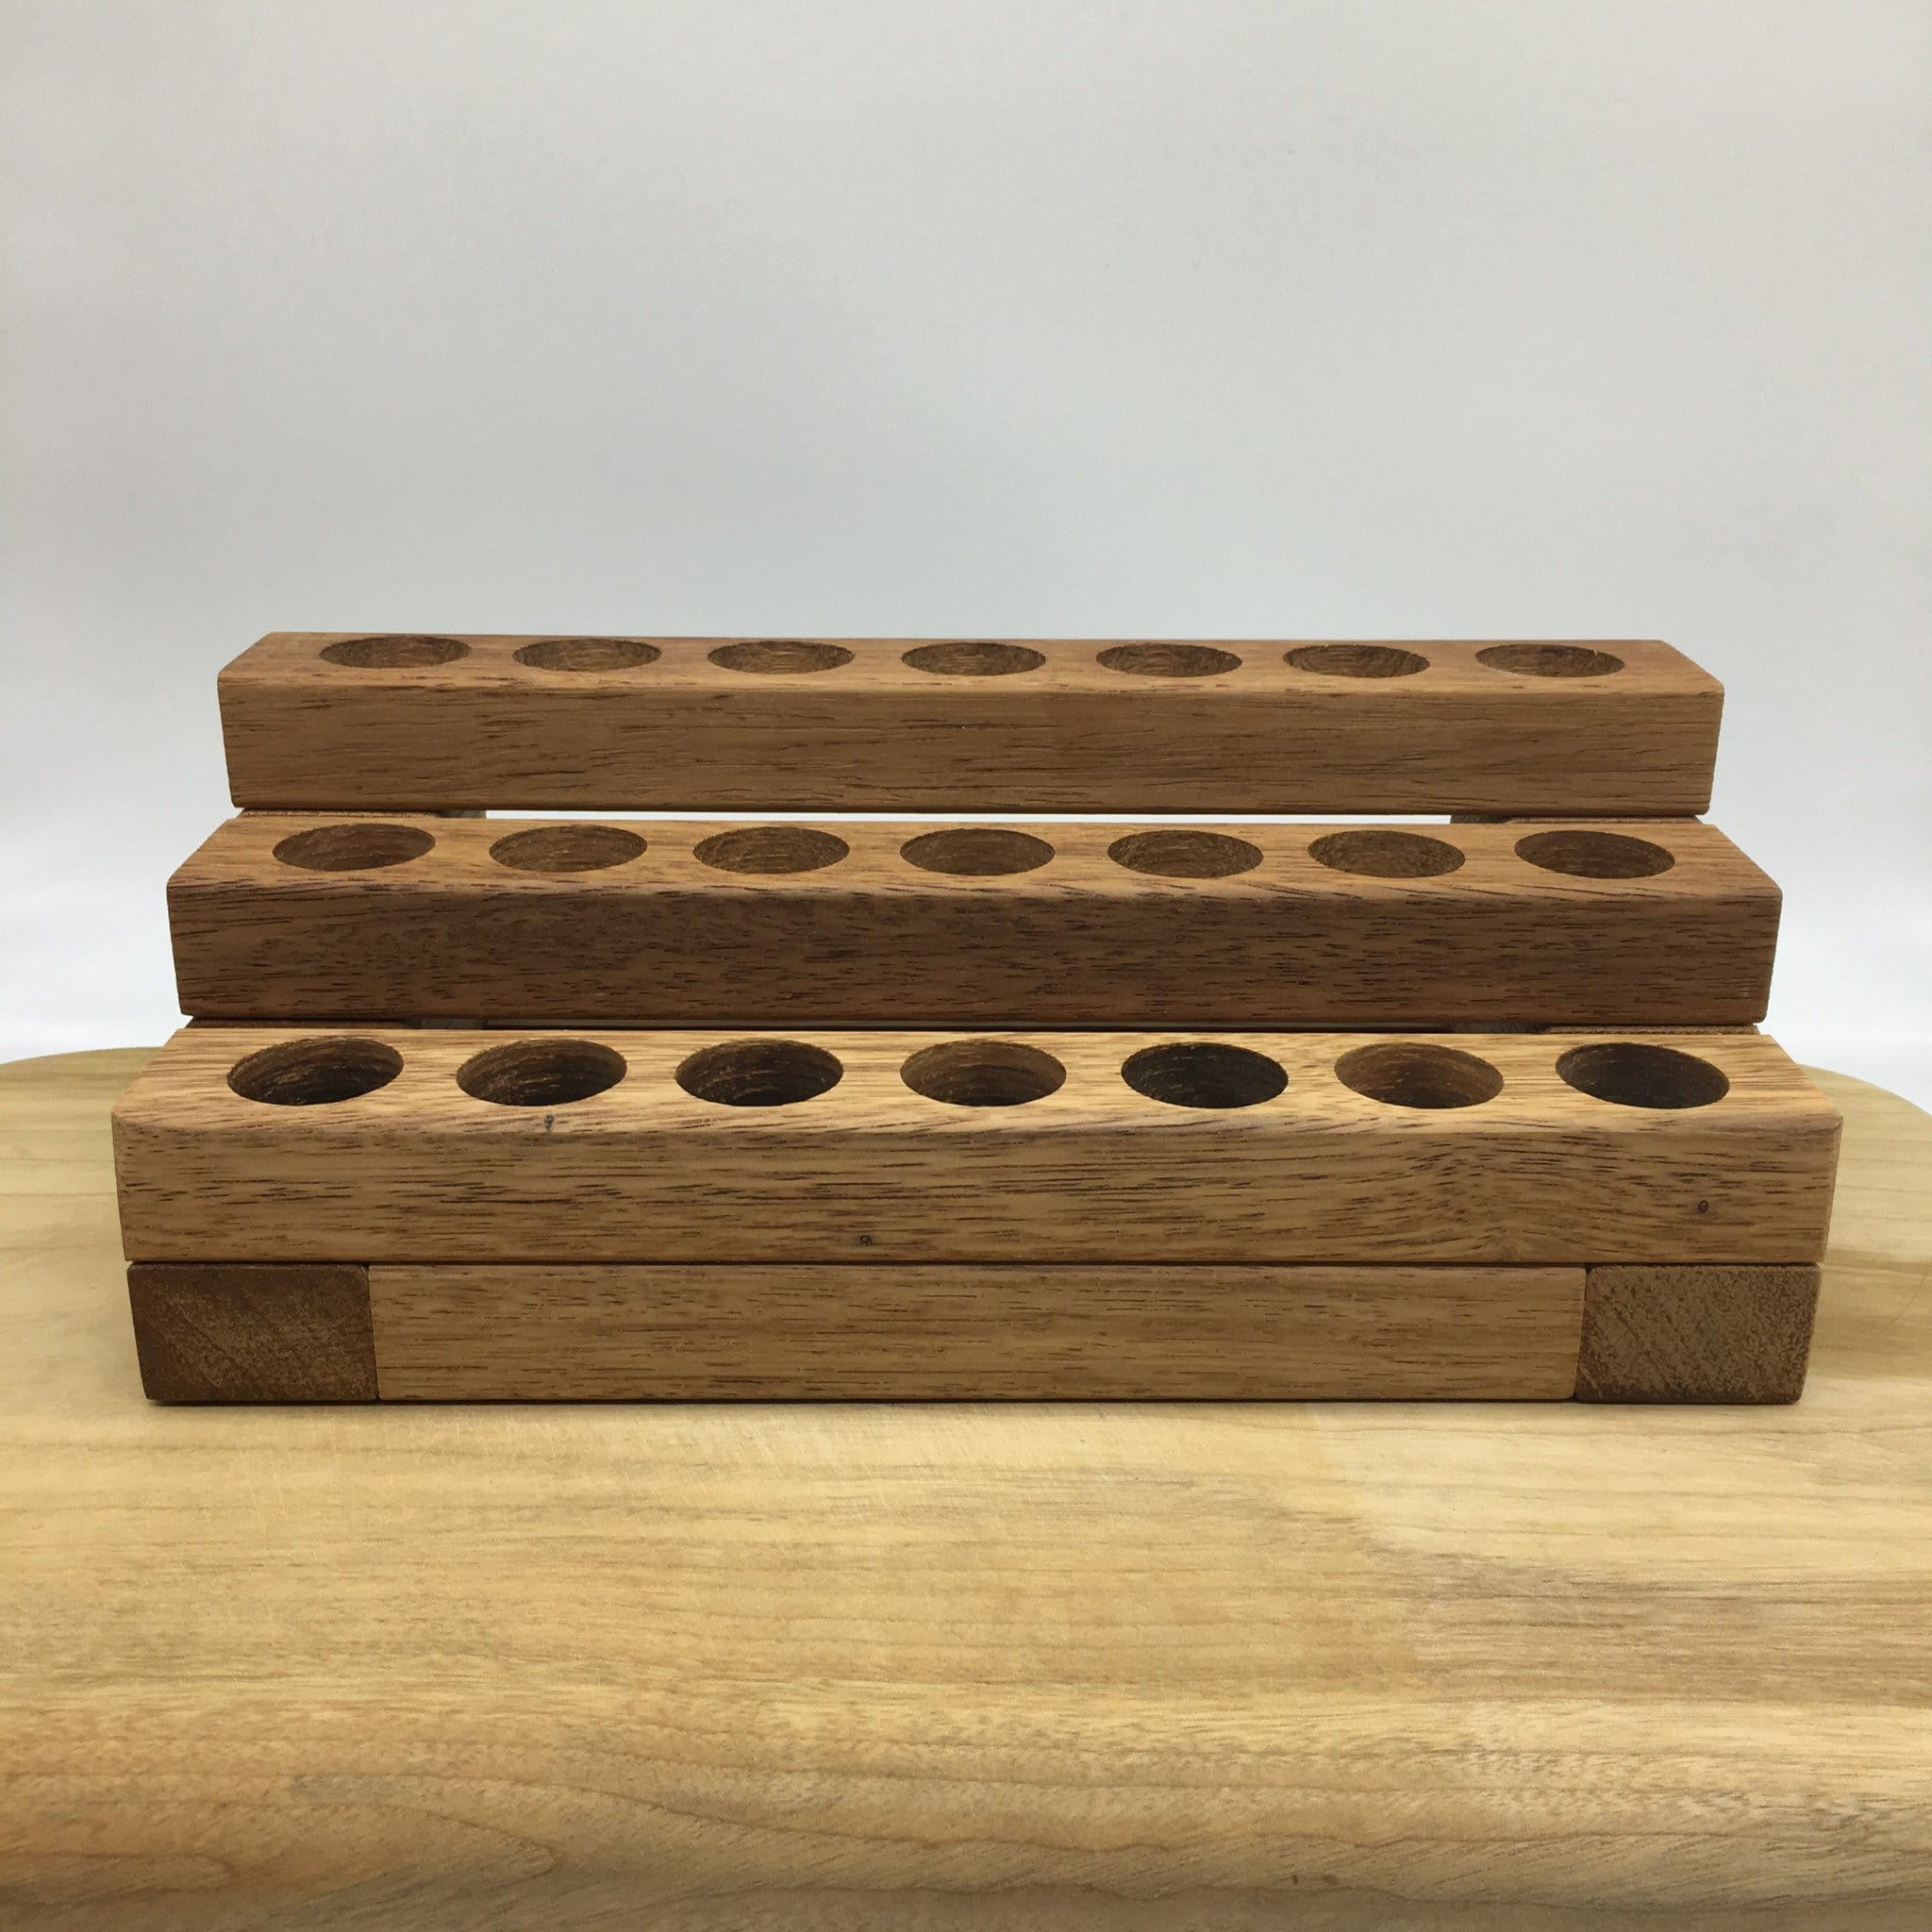 wooden essential oil stand 21 hole